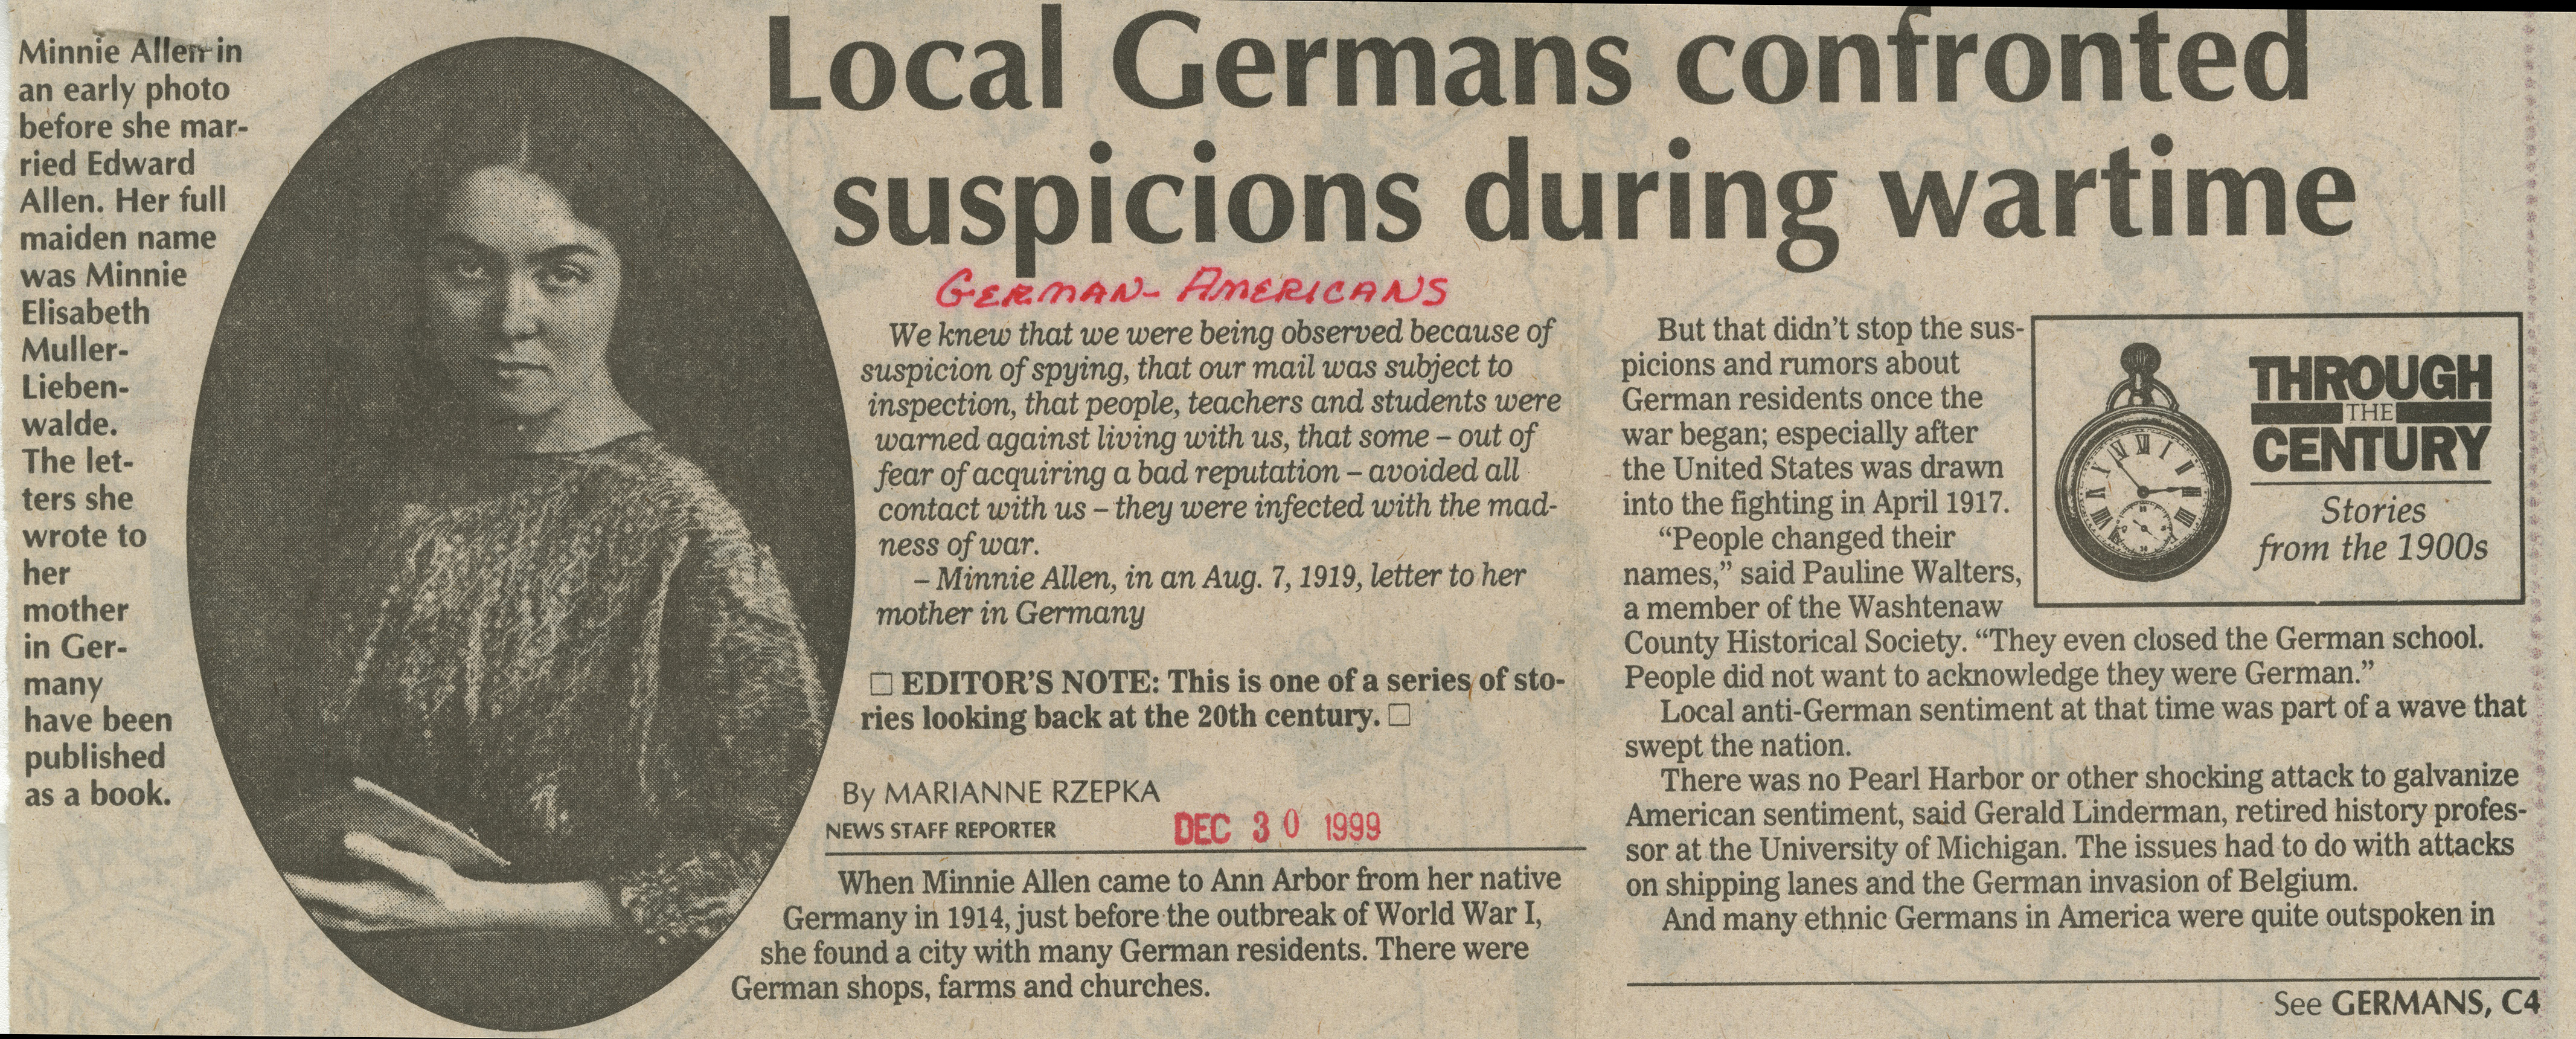 Local Germans confronted suspicions during wartime image